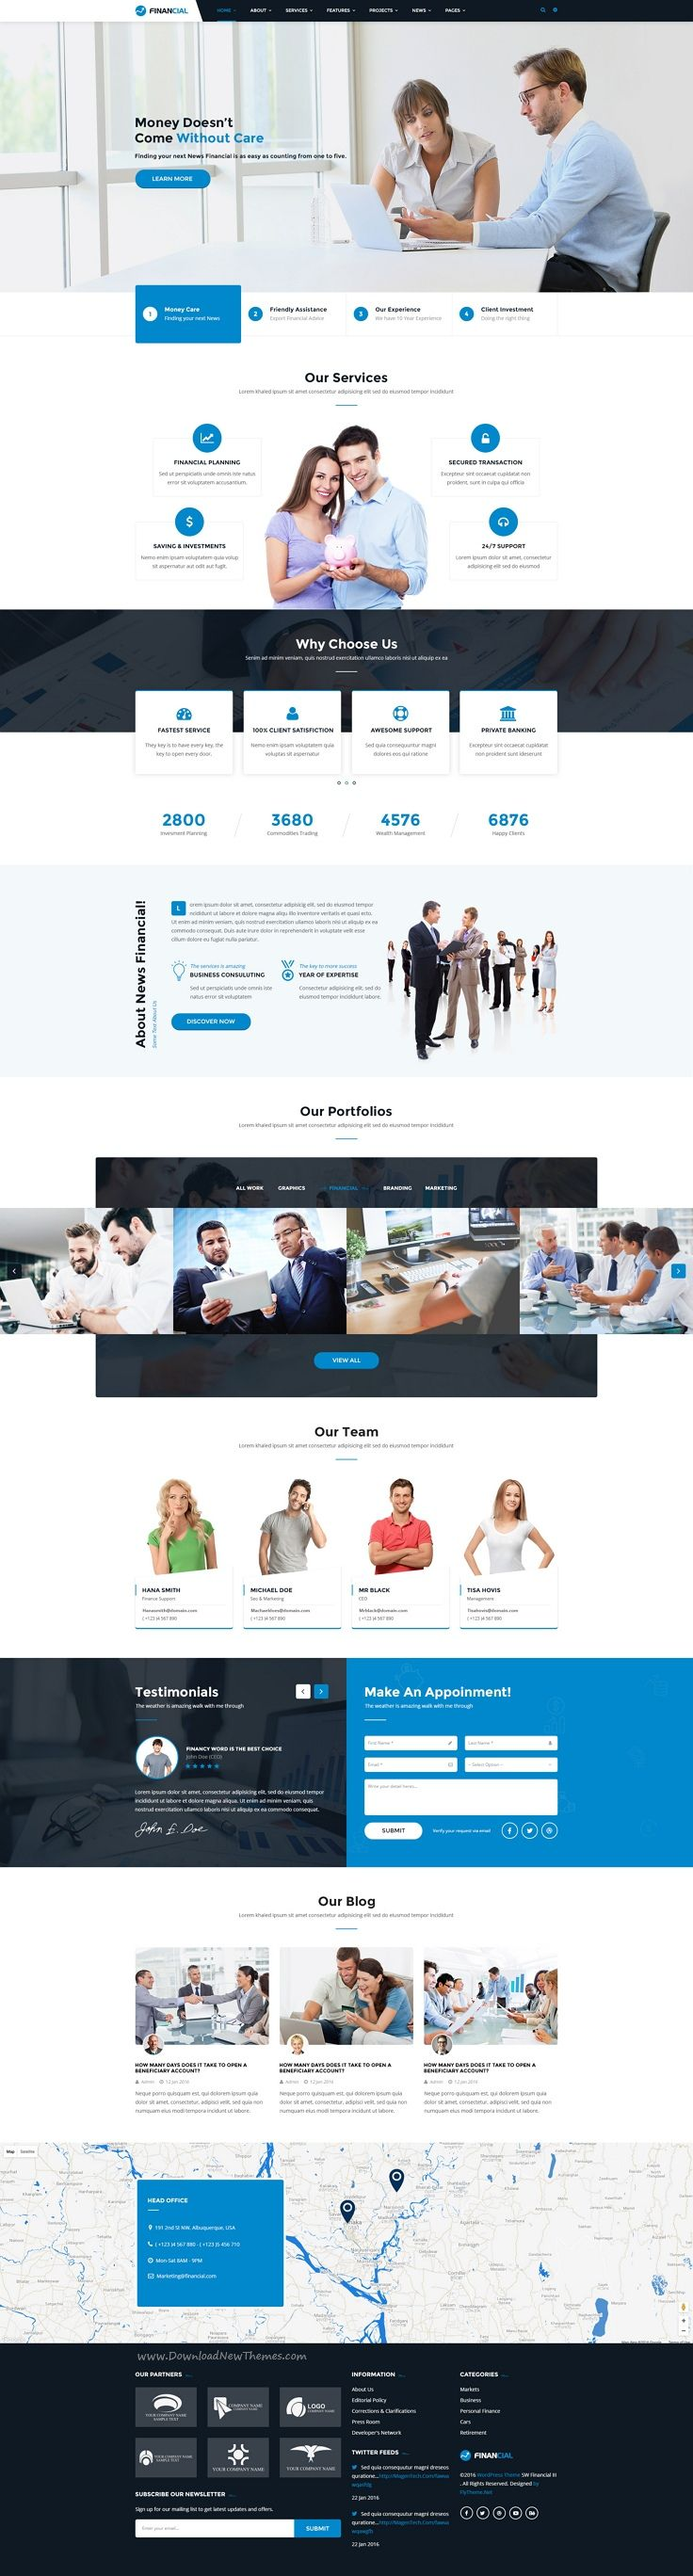 Financial III is clean and professional #PSD #template for #business & financial company website with 20 PSD pages download now➯ https://themeforest.net/item/financial-iii-business-financial-psd-template/16947510?ref=Datasata